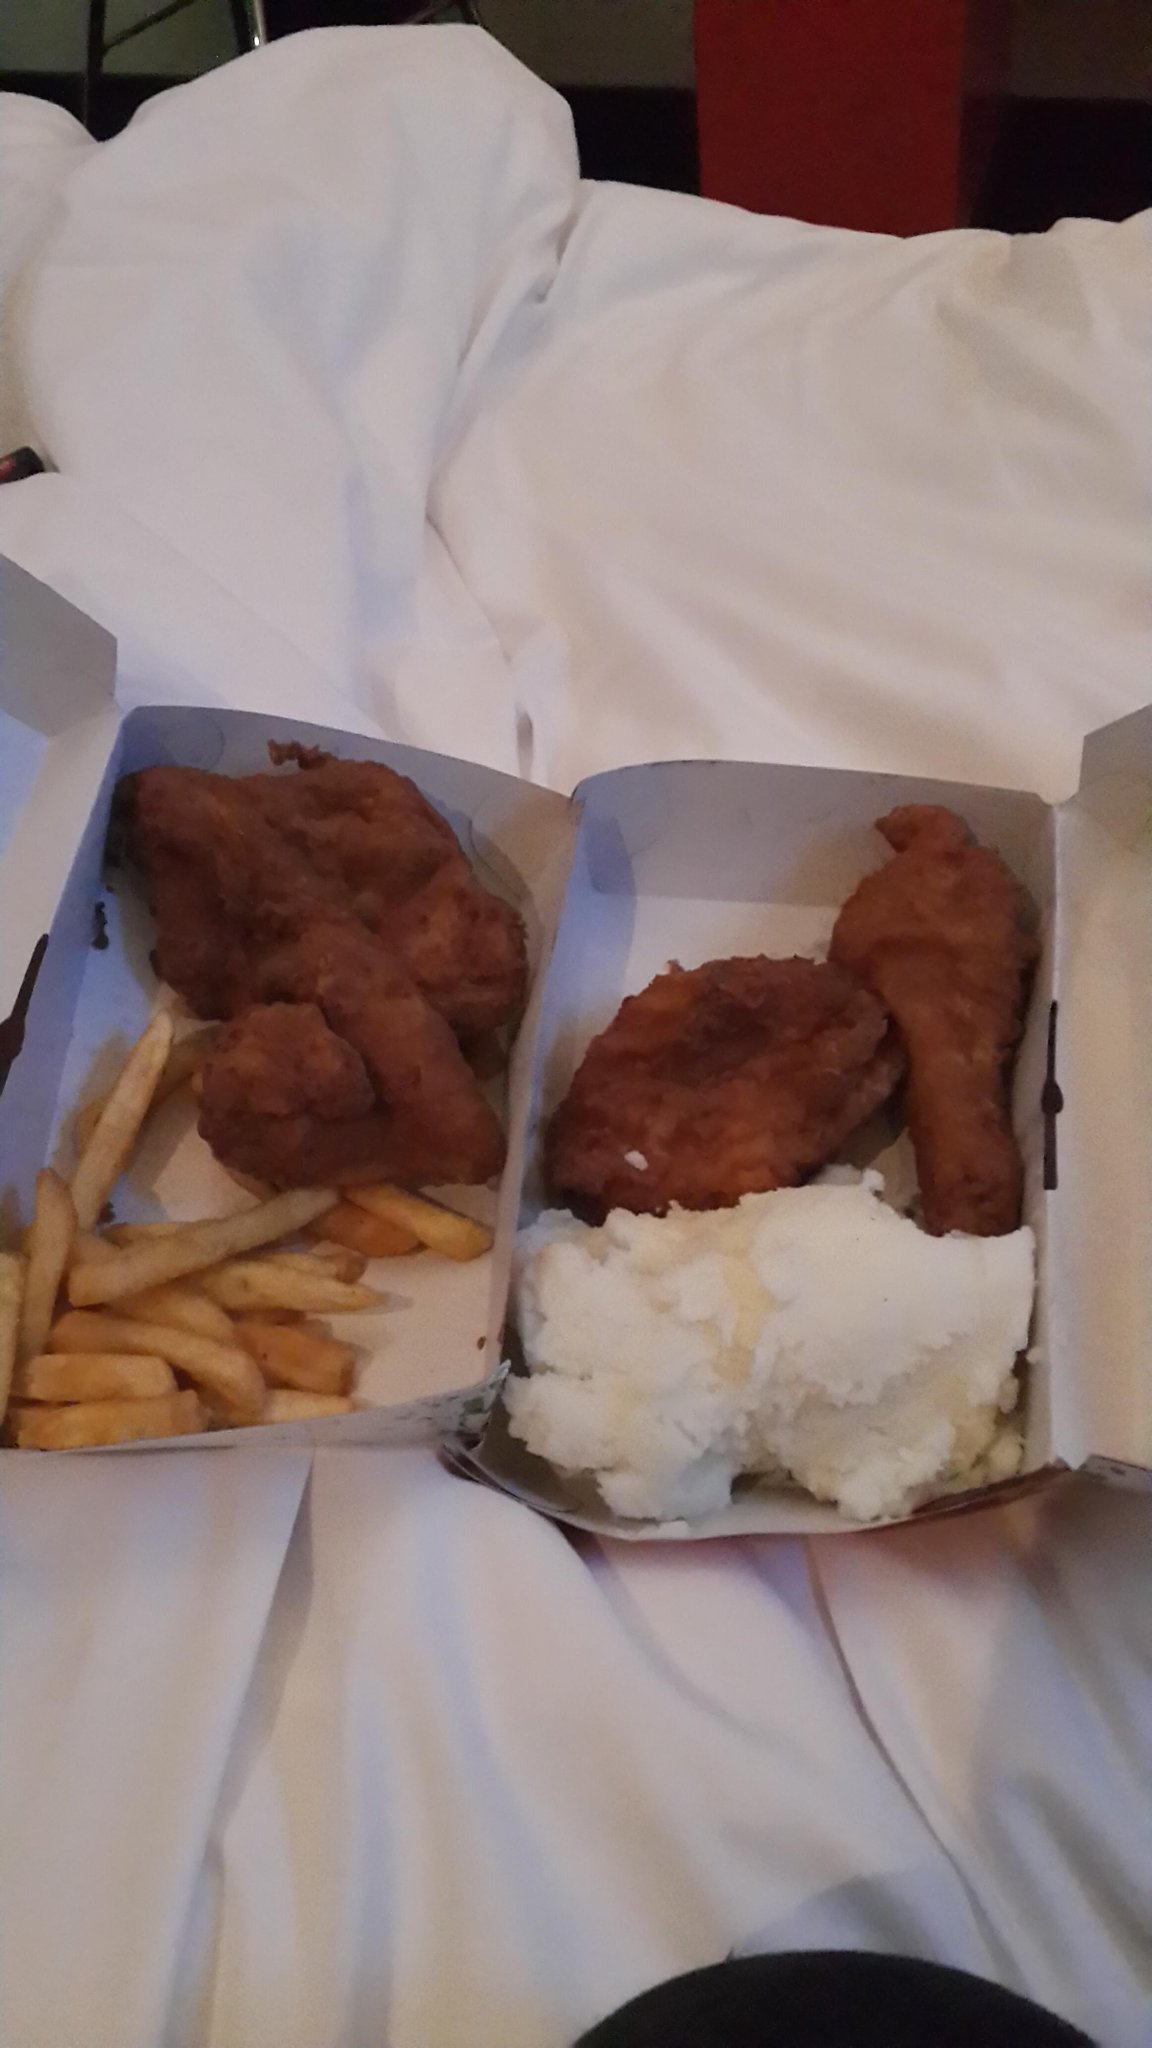 When bogosi and I r hungry so late at night. #3starafrica. http://t.co/I2ZTnUPwpr